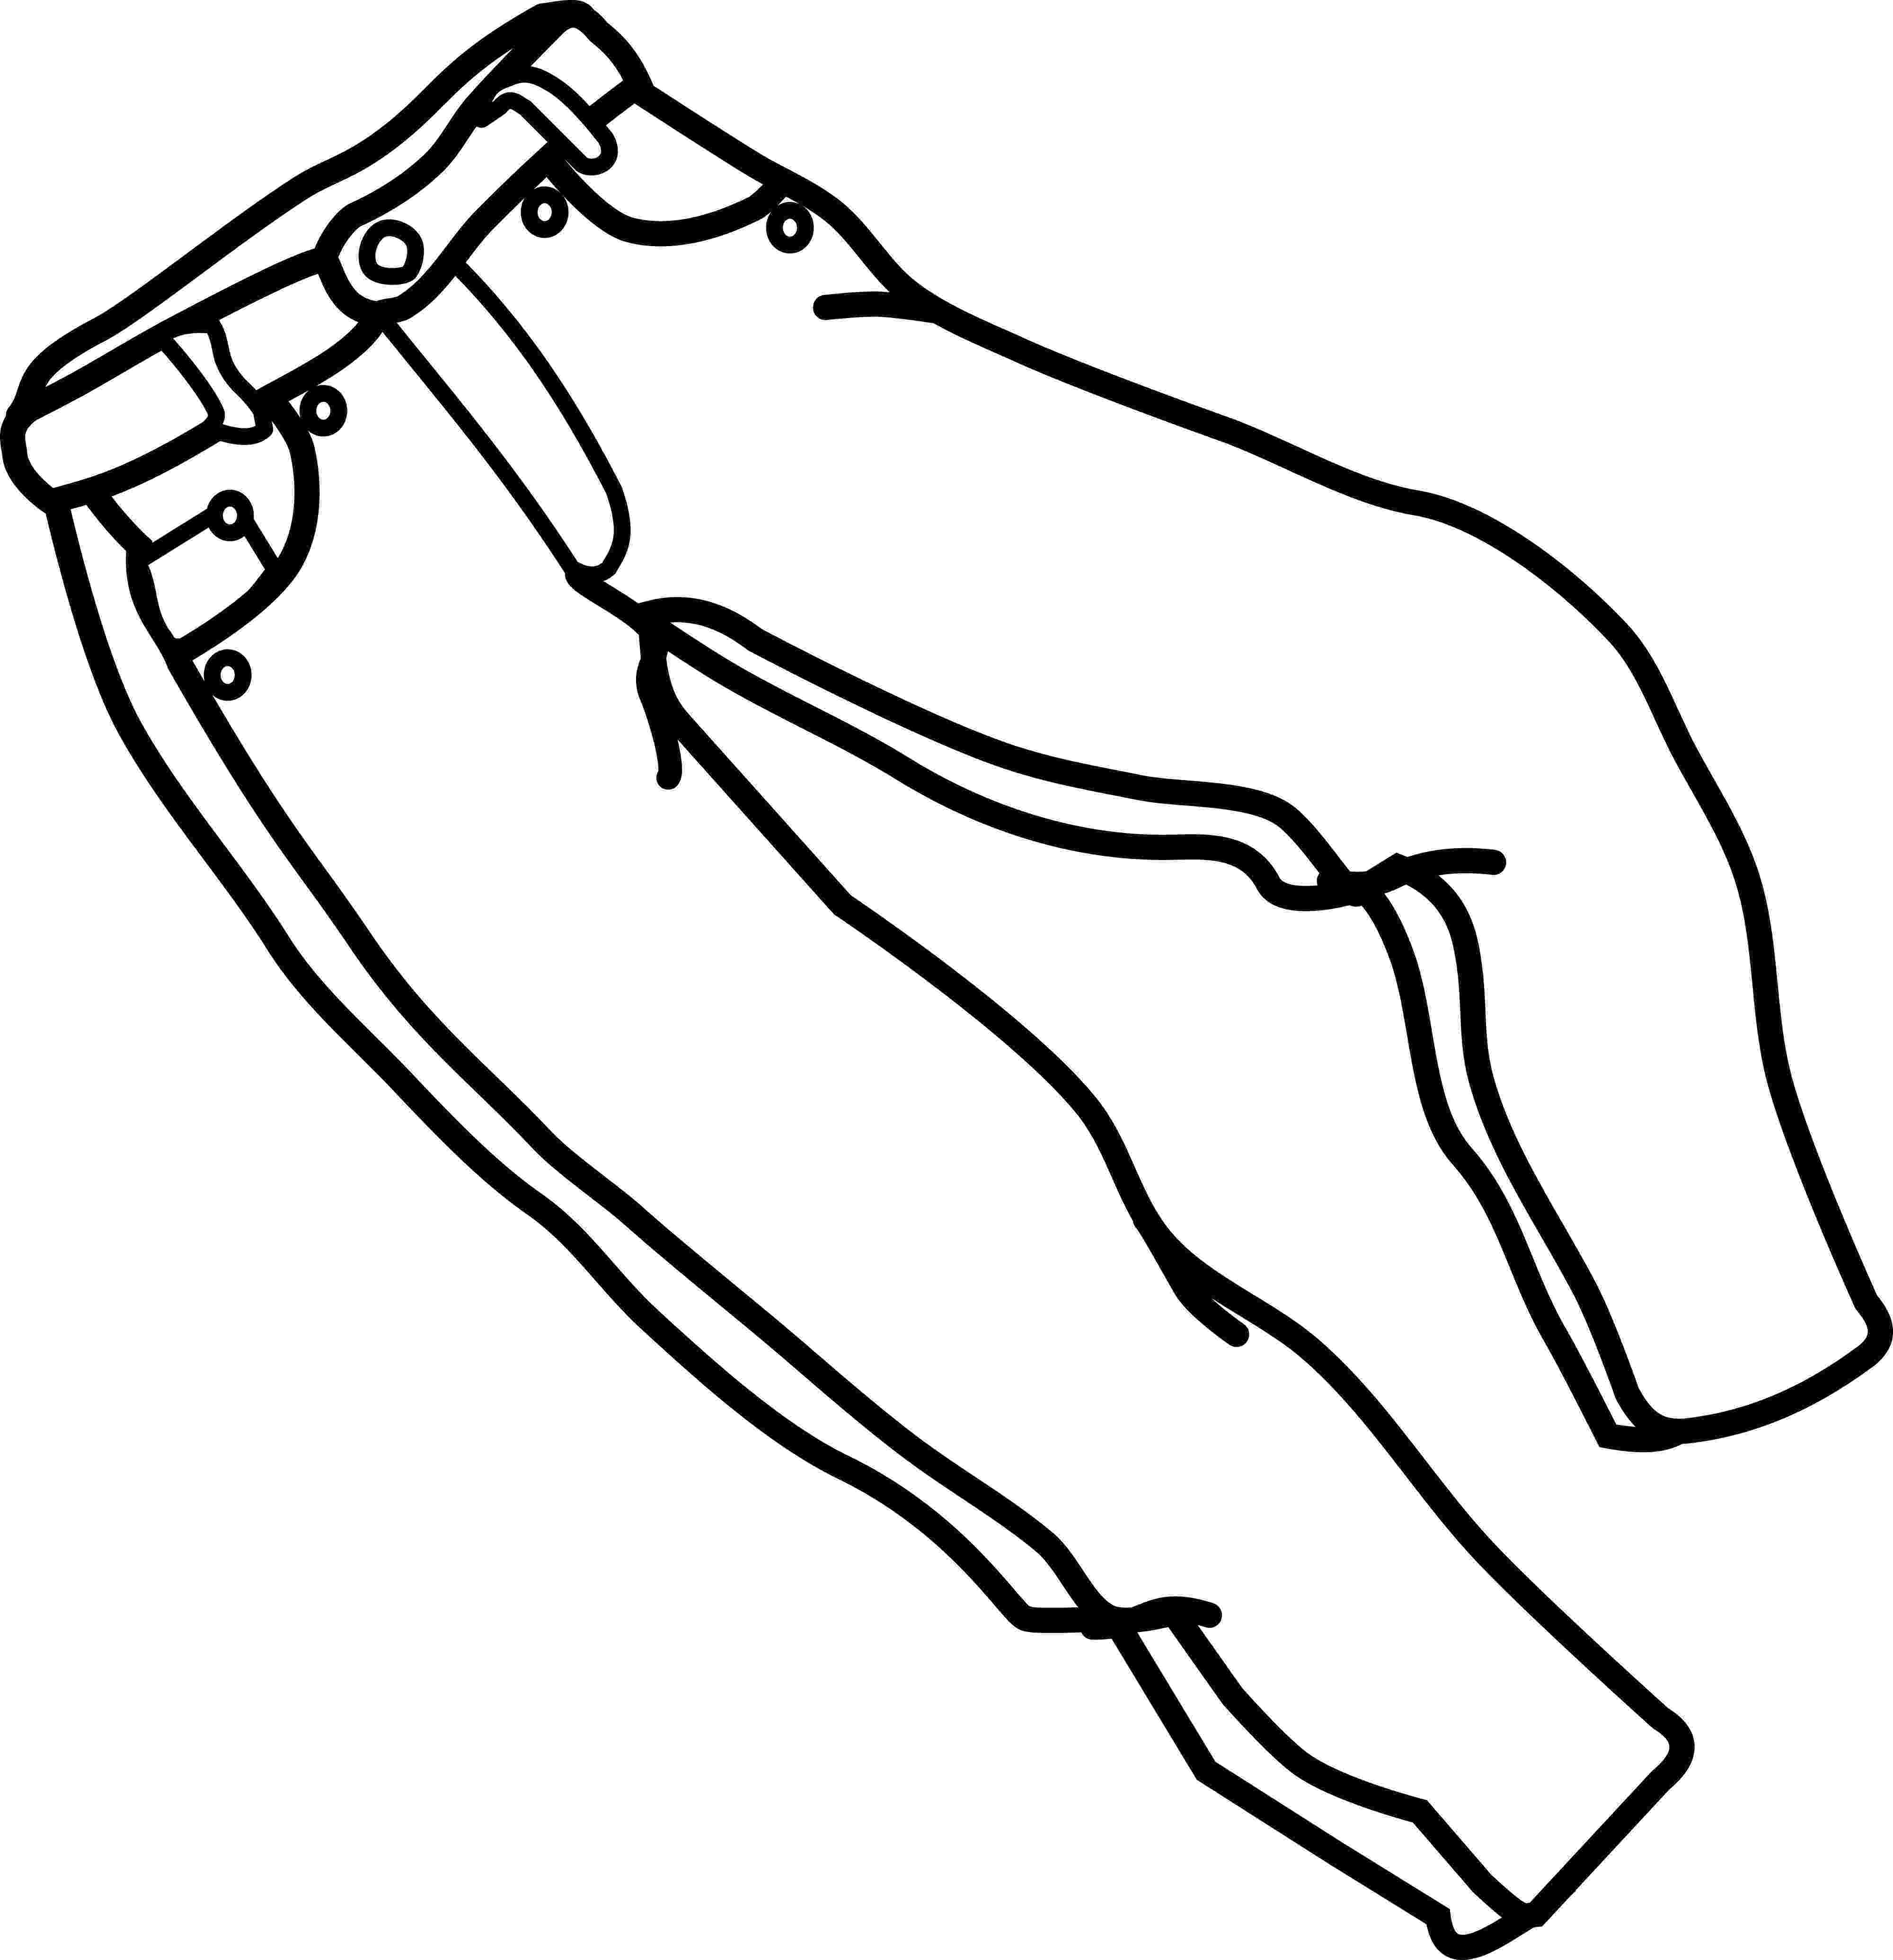 coloring picture of pants denim jeans coloring pages download free denim jeans of picture coloring pants